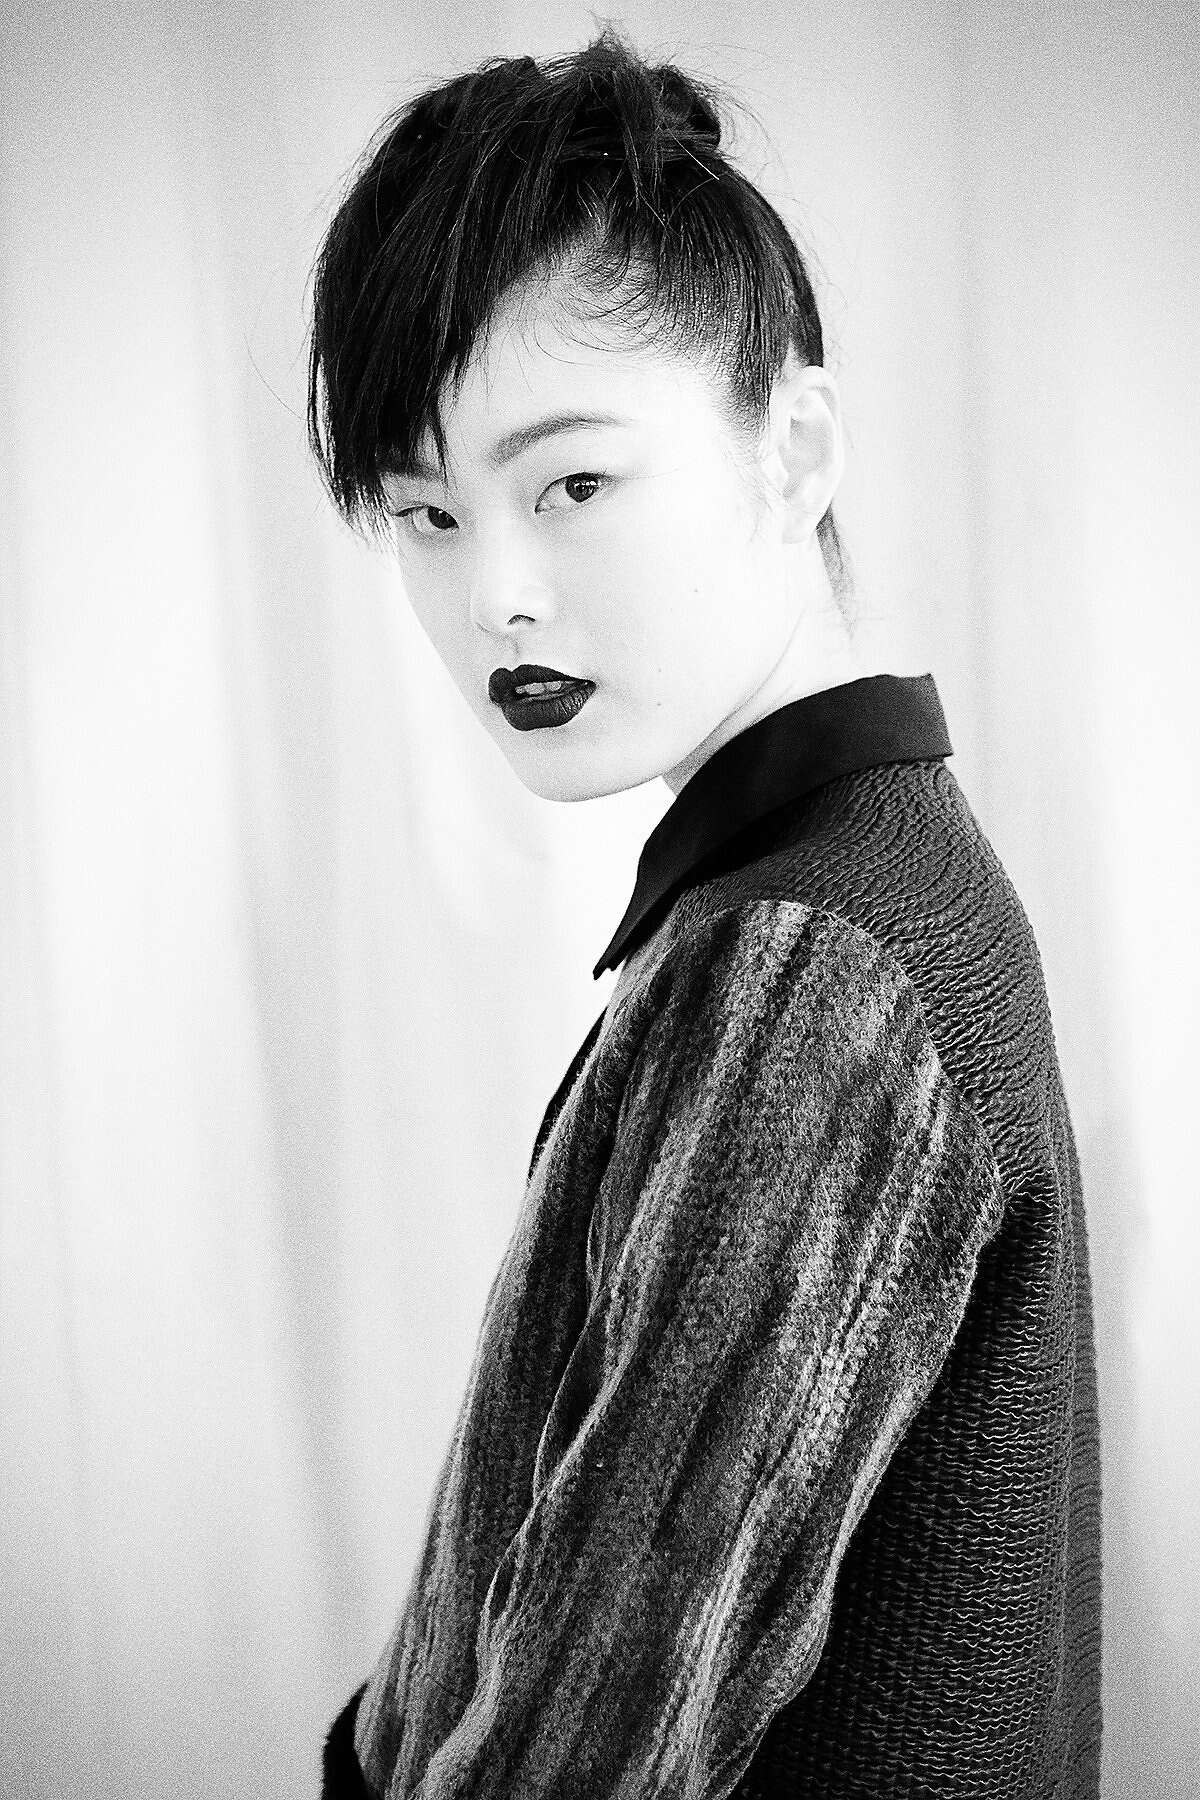 Hair by Jon Reyman, backstage at the Ann Yee show Feb. 5, where he described the look as